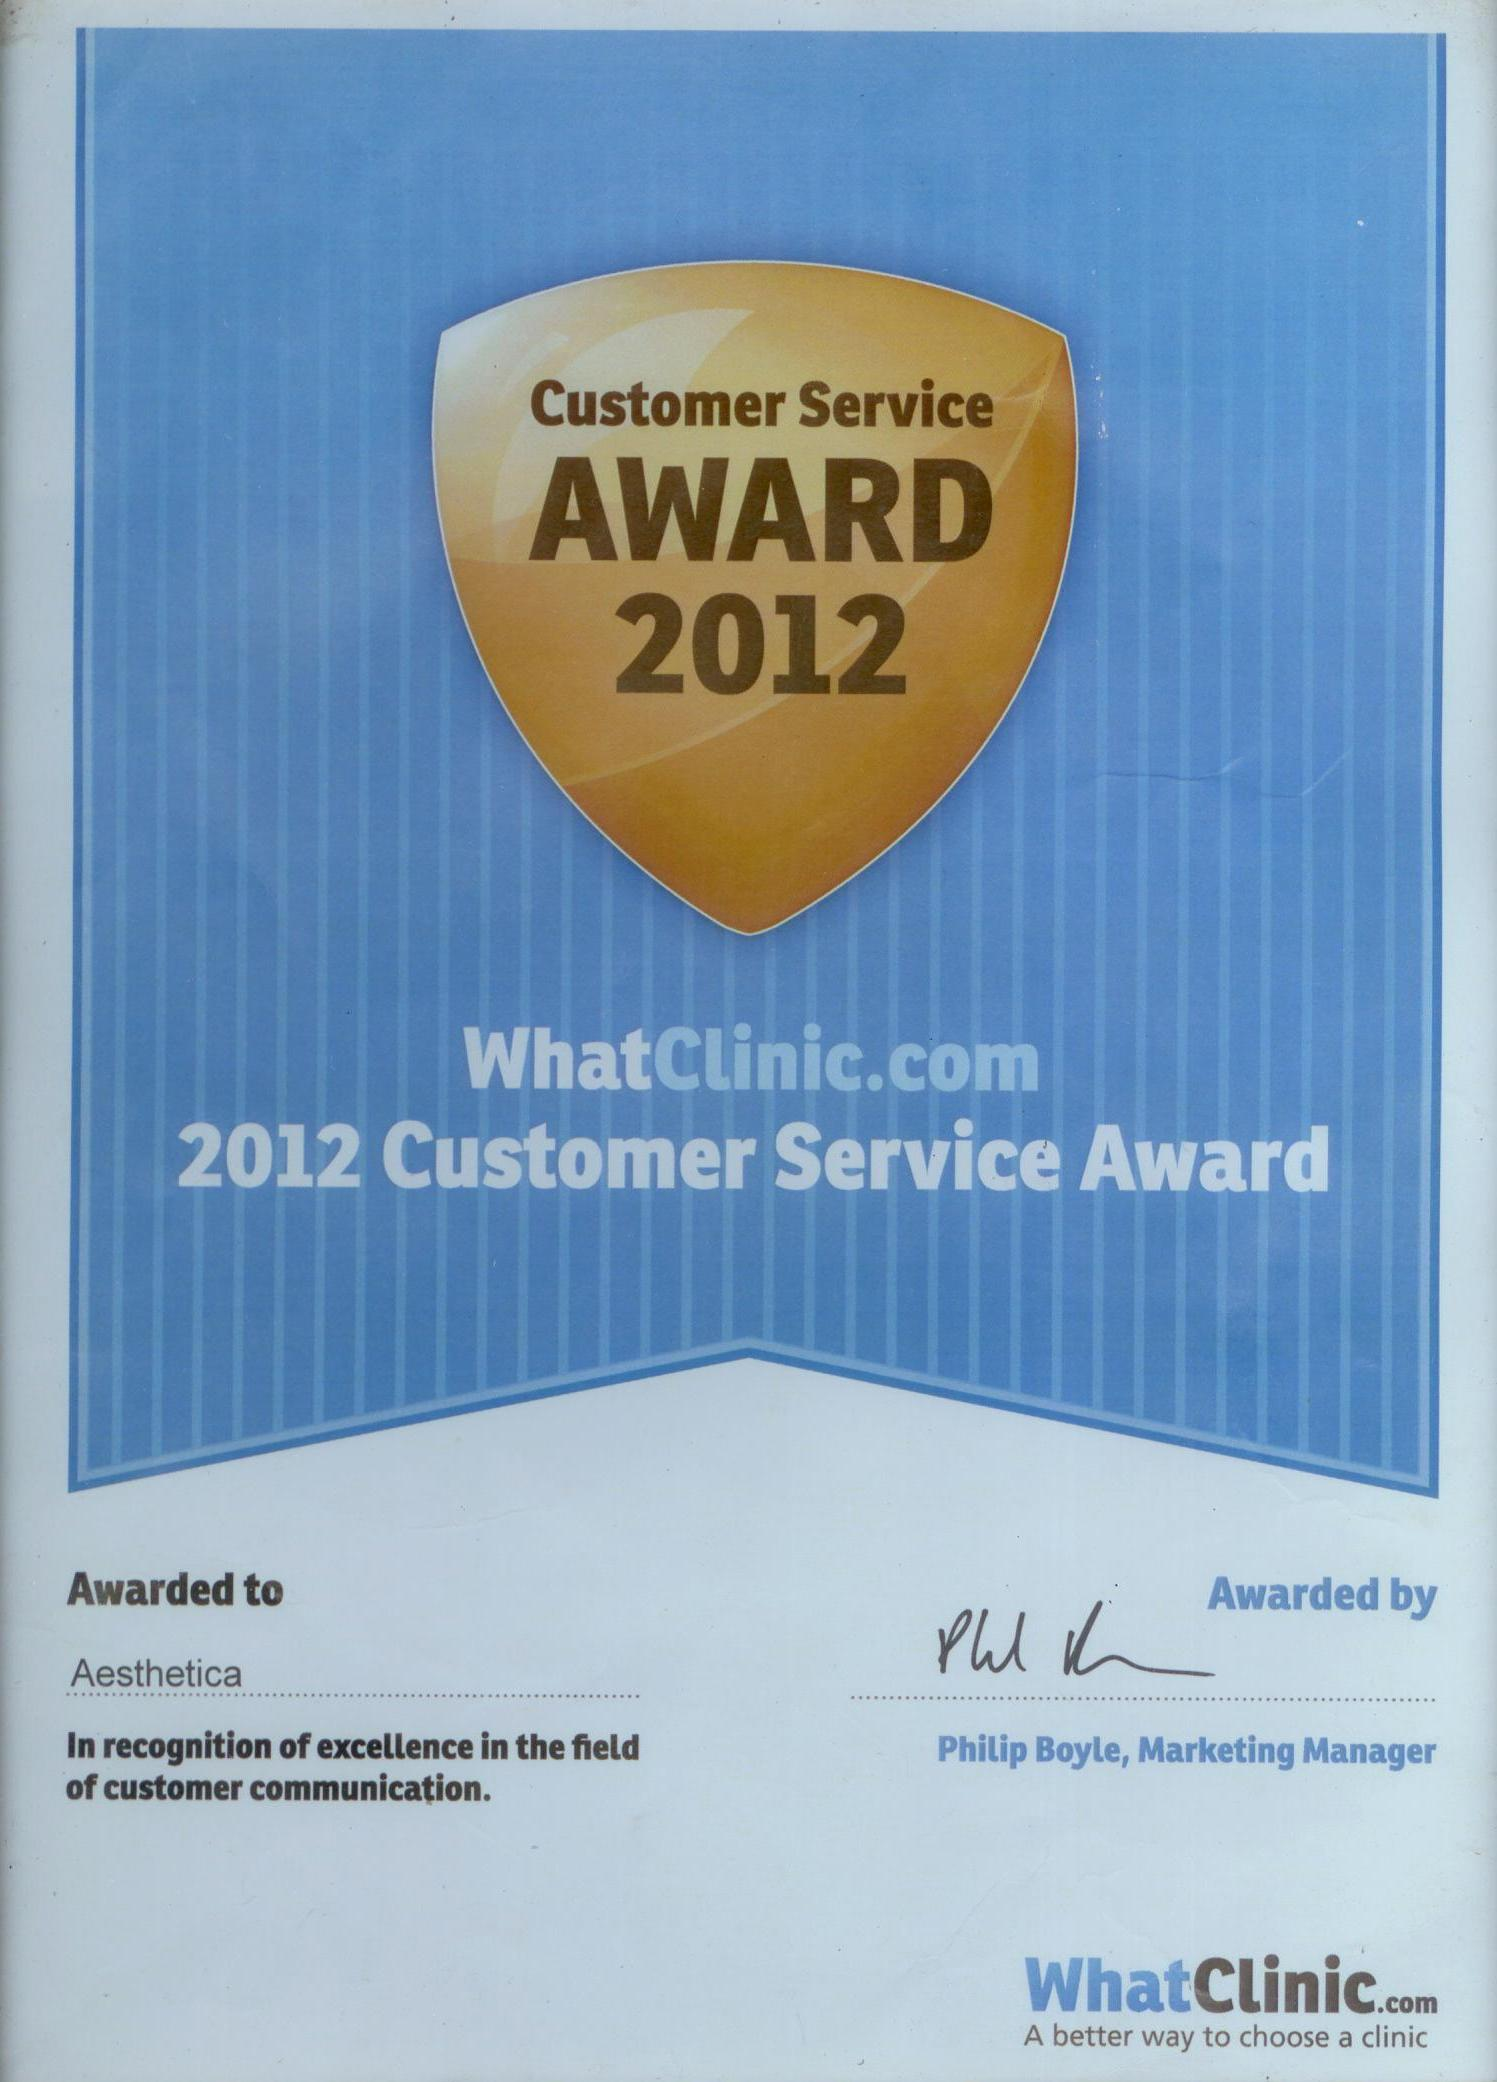 Whatclinic.com – Award Winner 2013